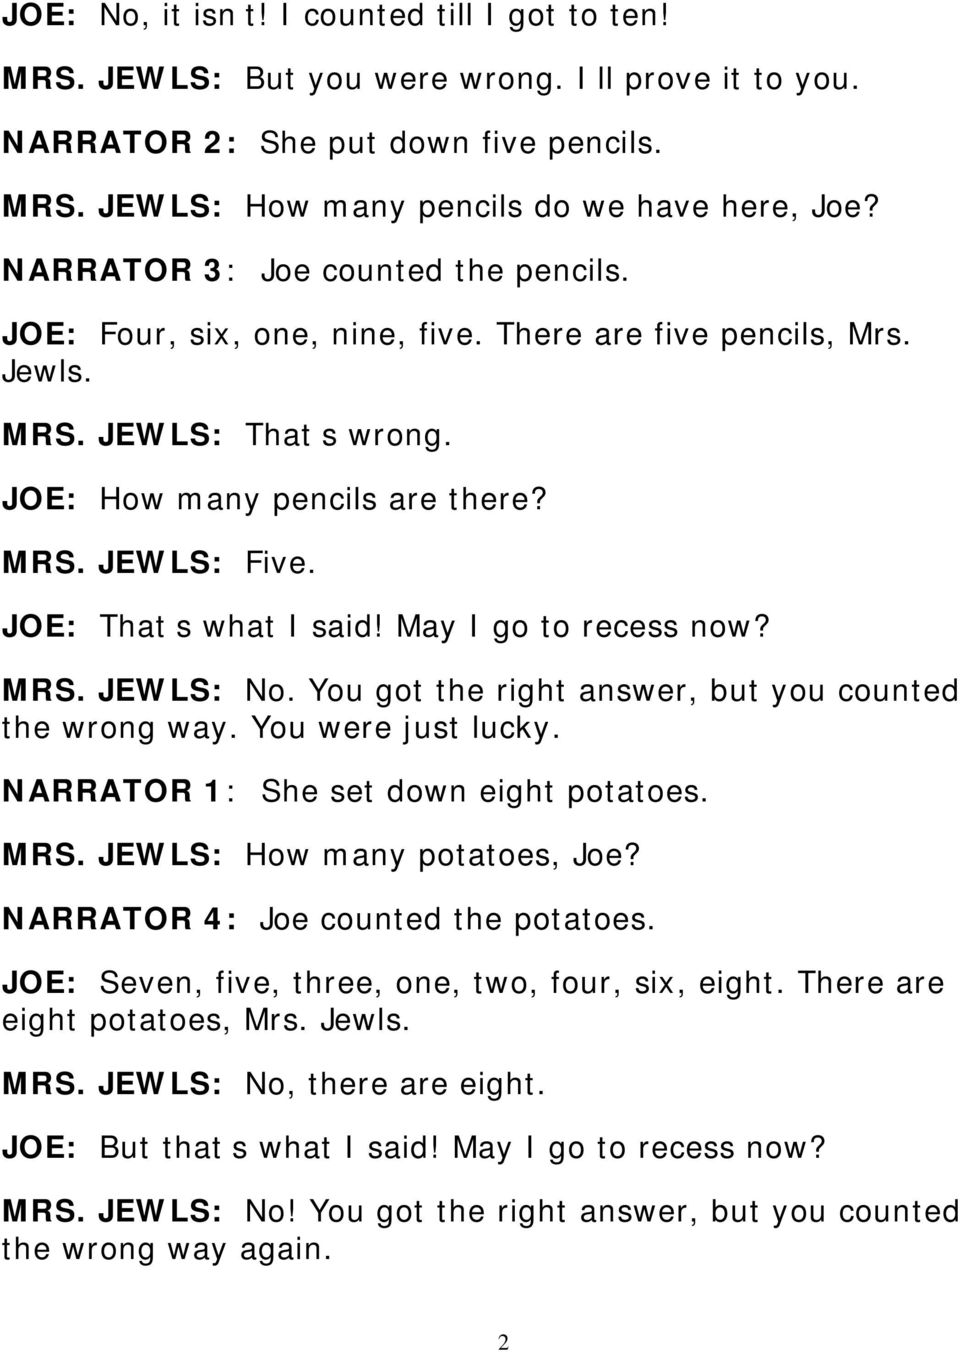 JOE: That s what I said! May I go to recess now? MRS. JEWLS: No. You got the right answer, but you counted the wrong way. You were just lucky. NARRATOR 1: She set down eight potatoes. MRS. JEWLS: How many potatoes, Joe?